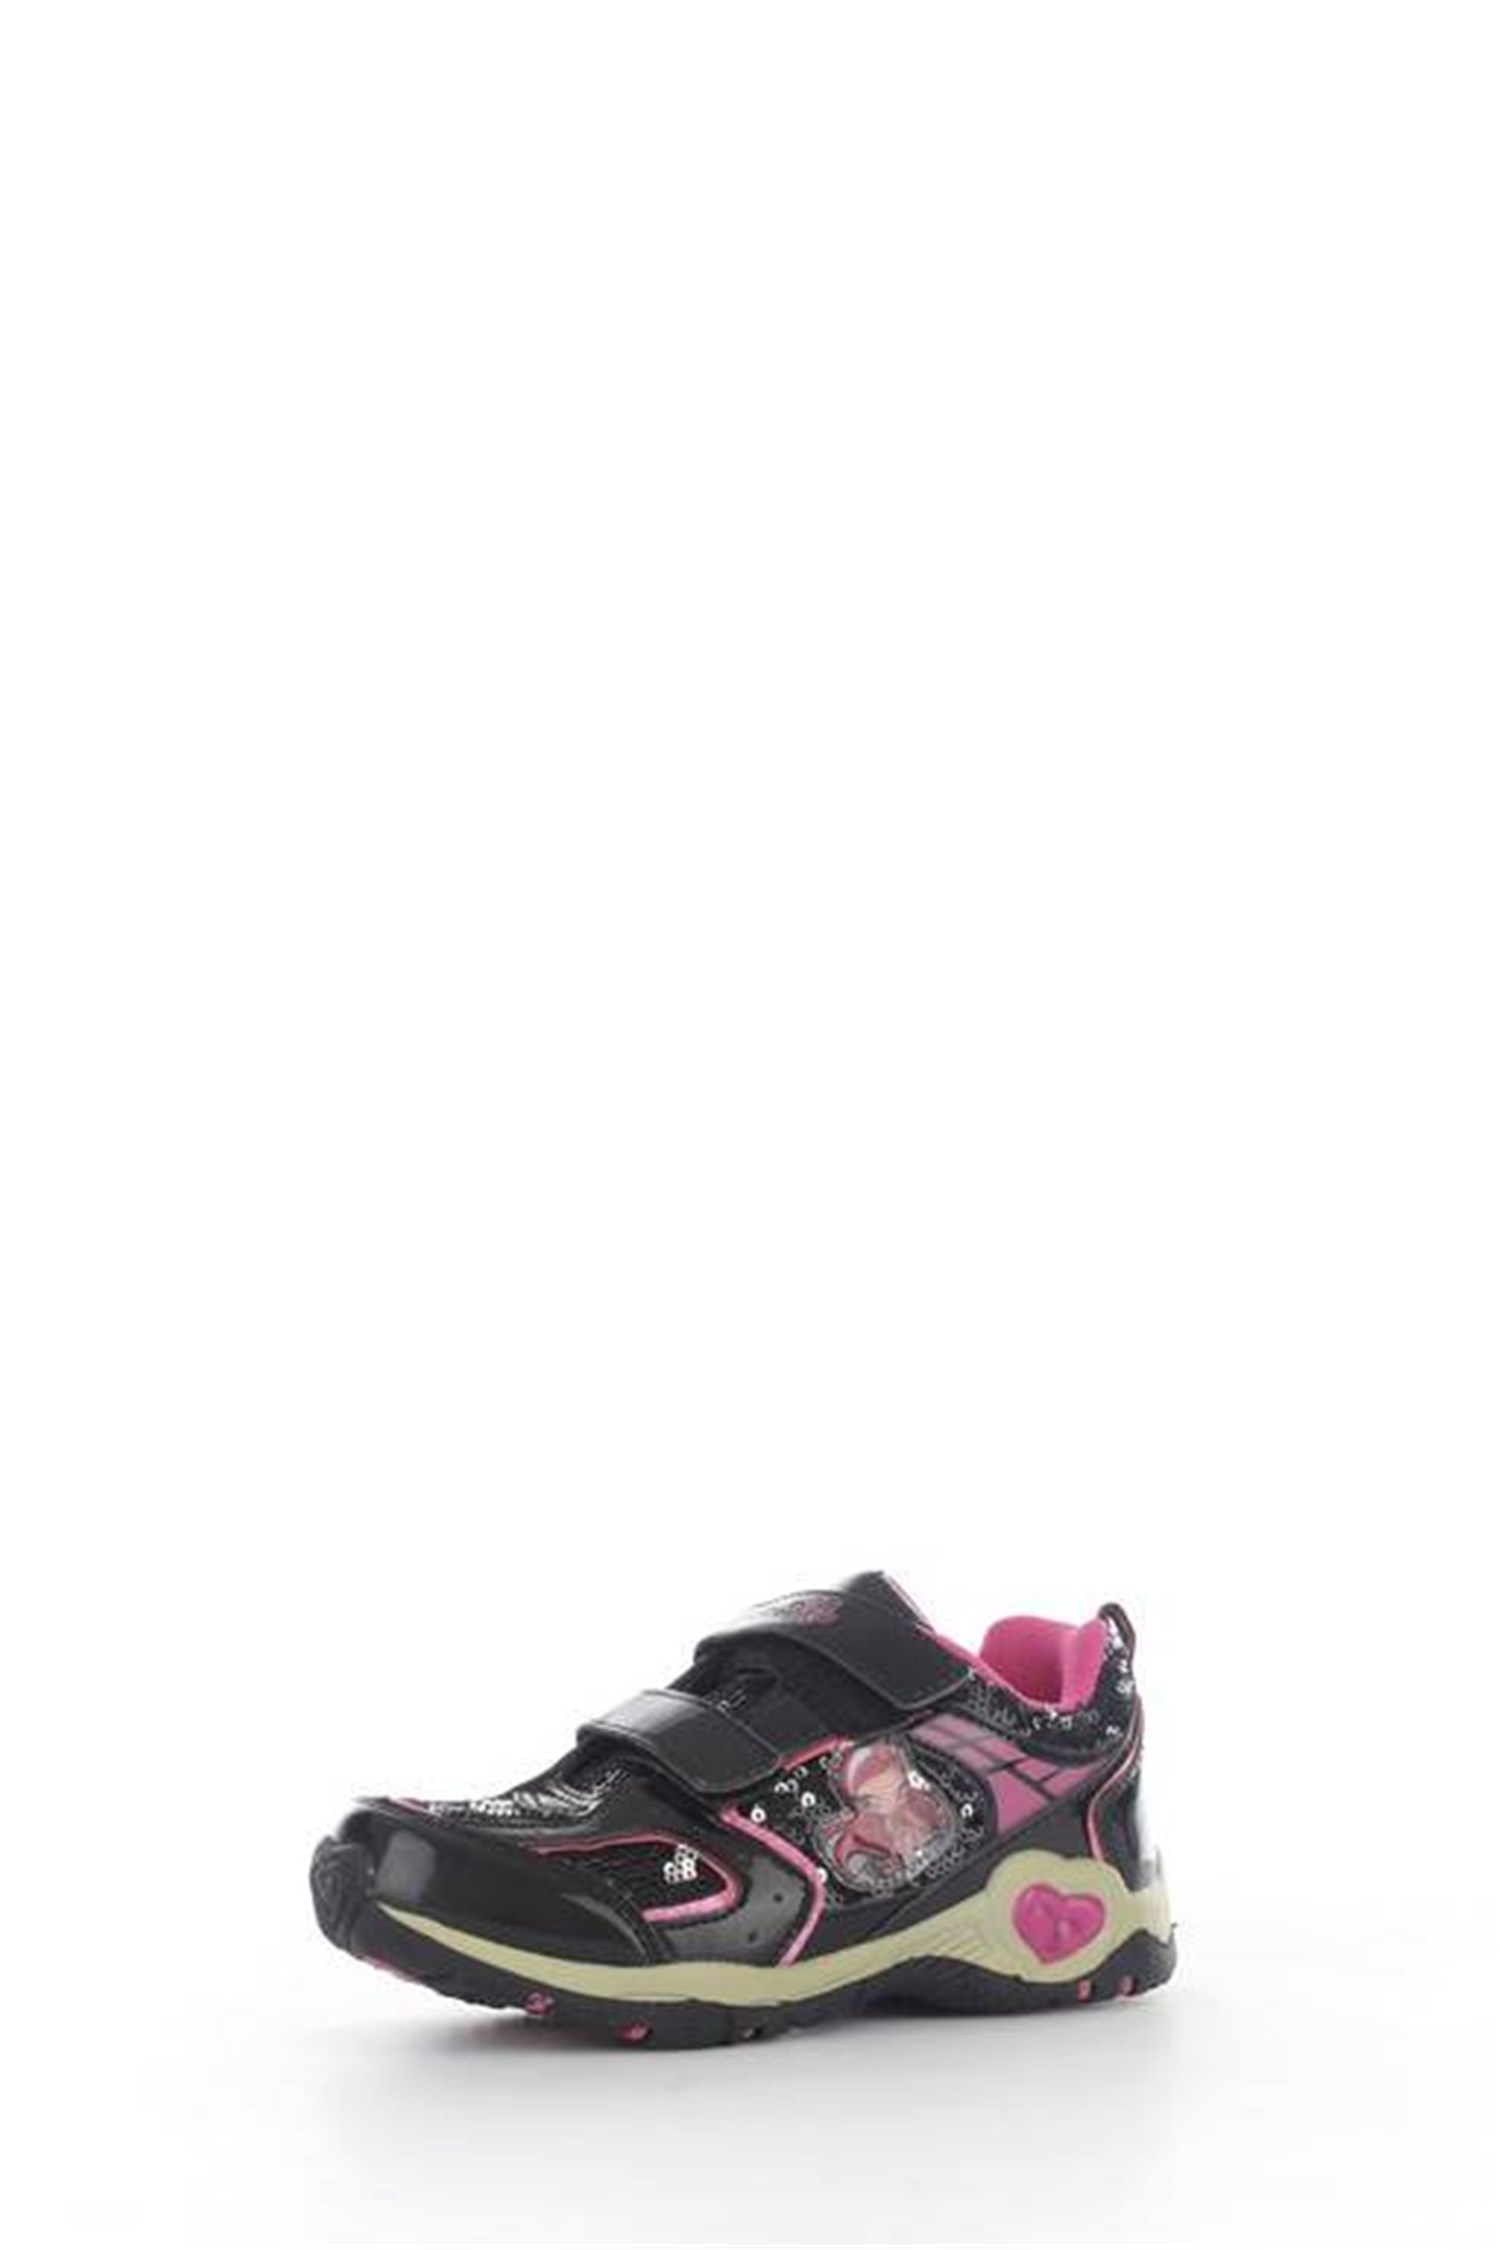 Canguro Shoes Child low BLACK V1710